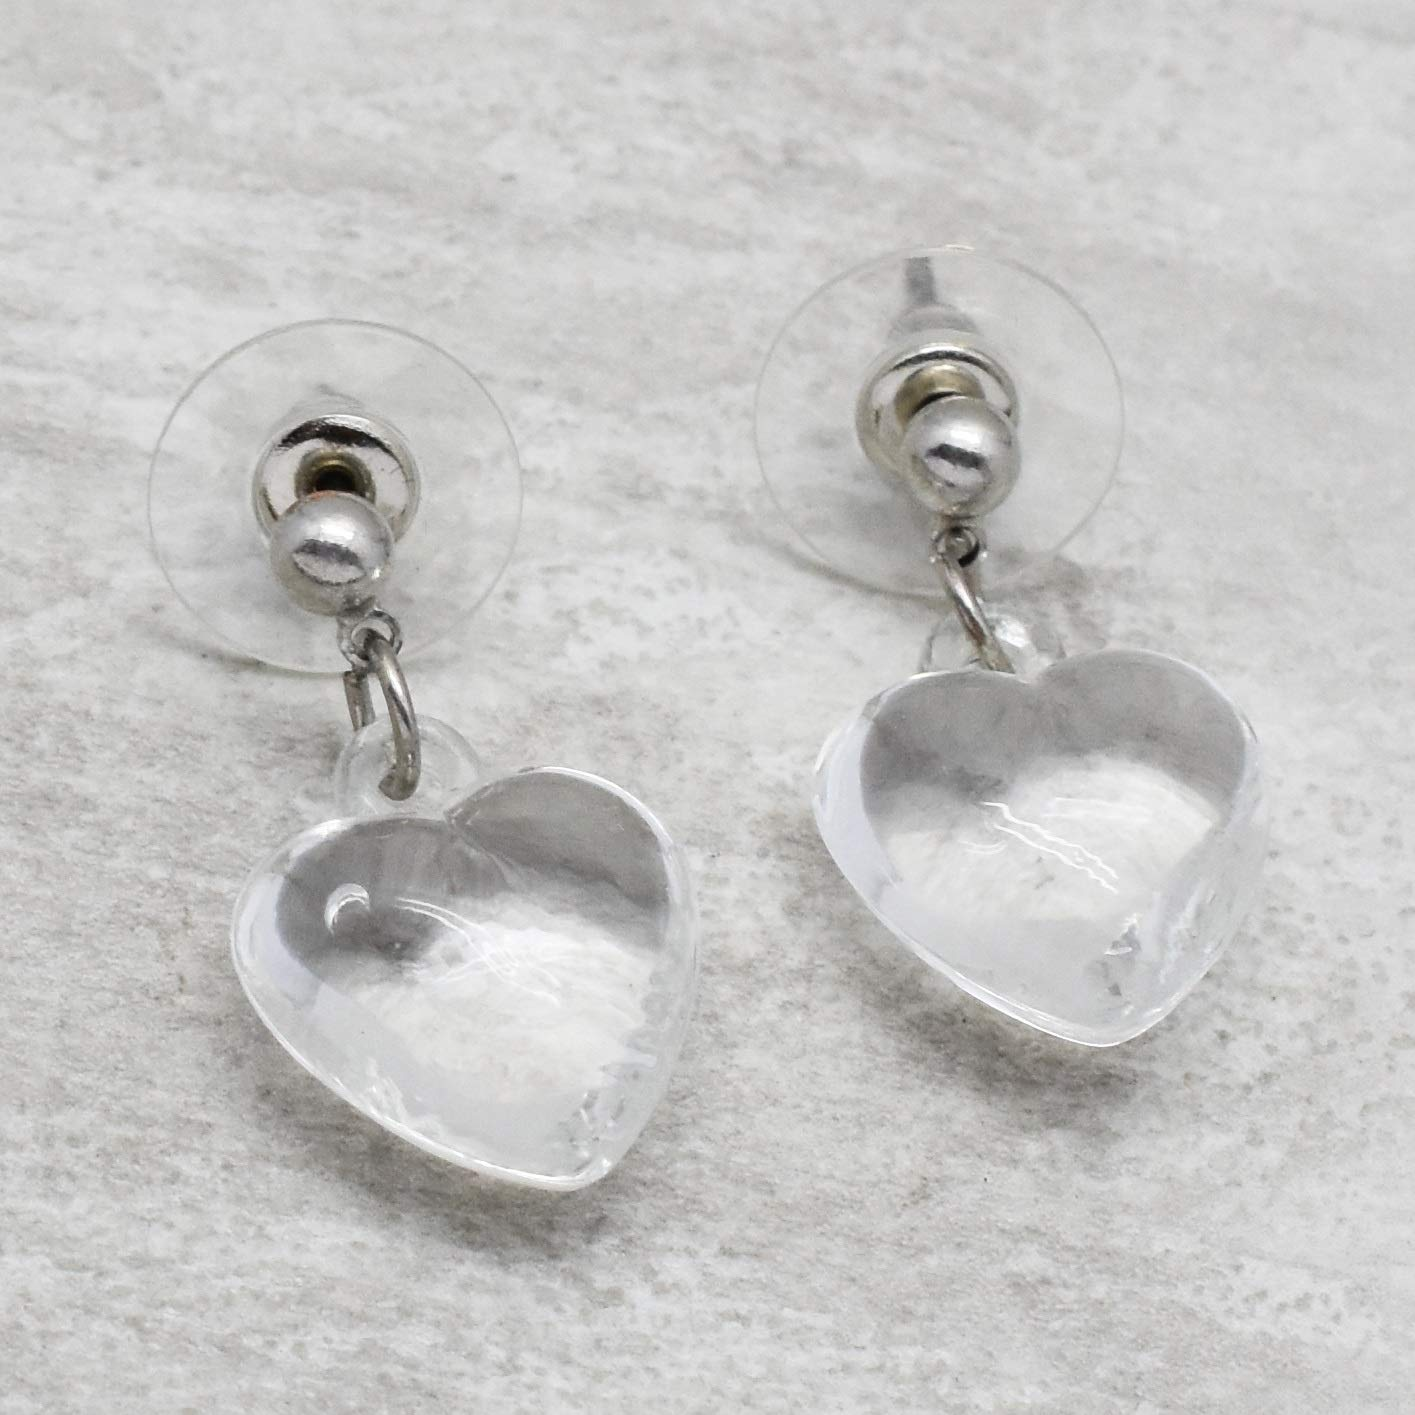 The V Collection earrings silver plated heart shape crystal fashion jewelry stud earrings gifts for her